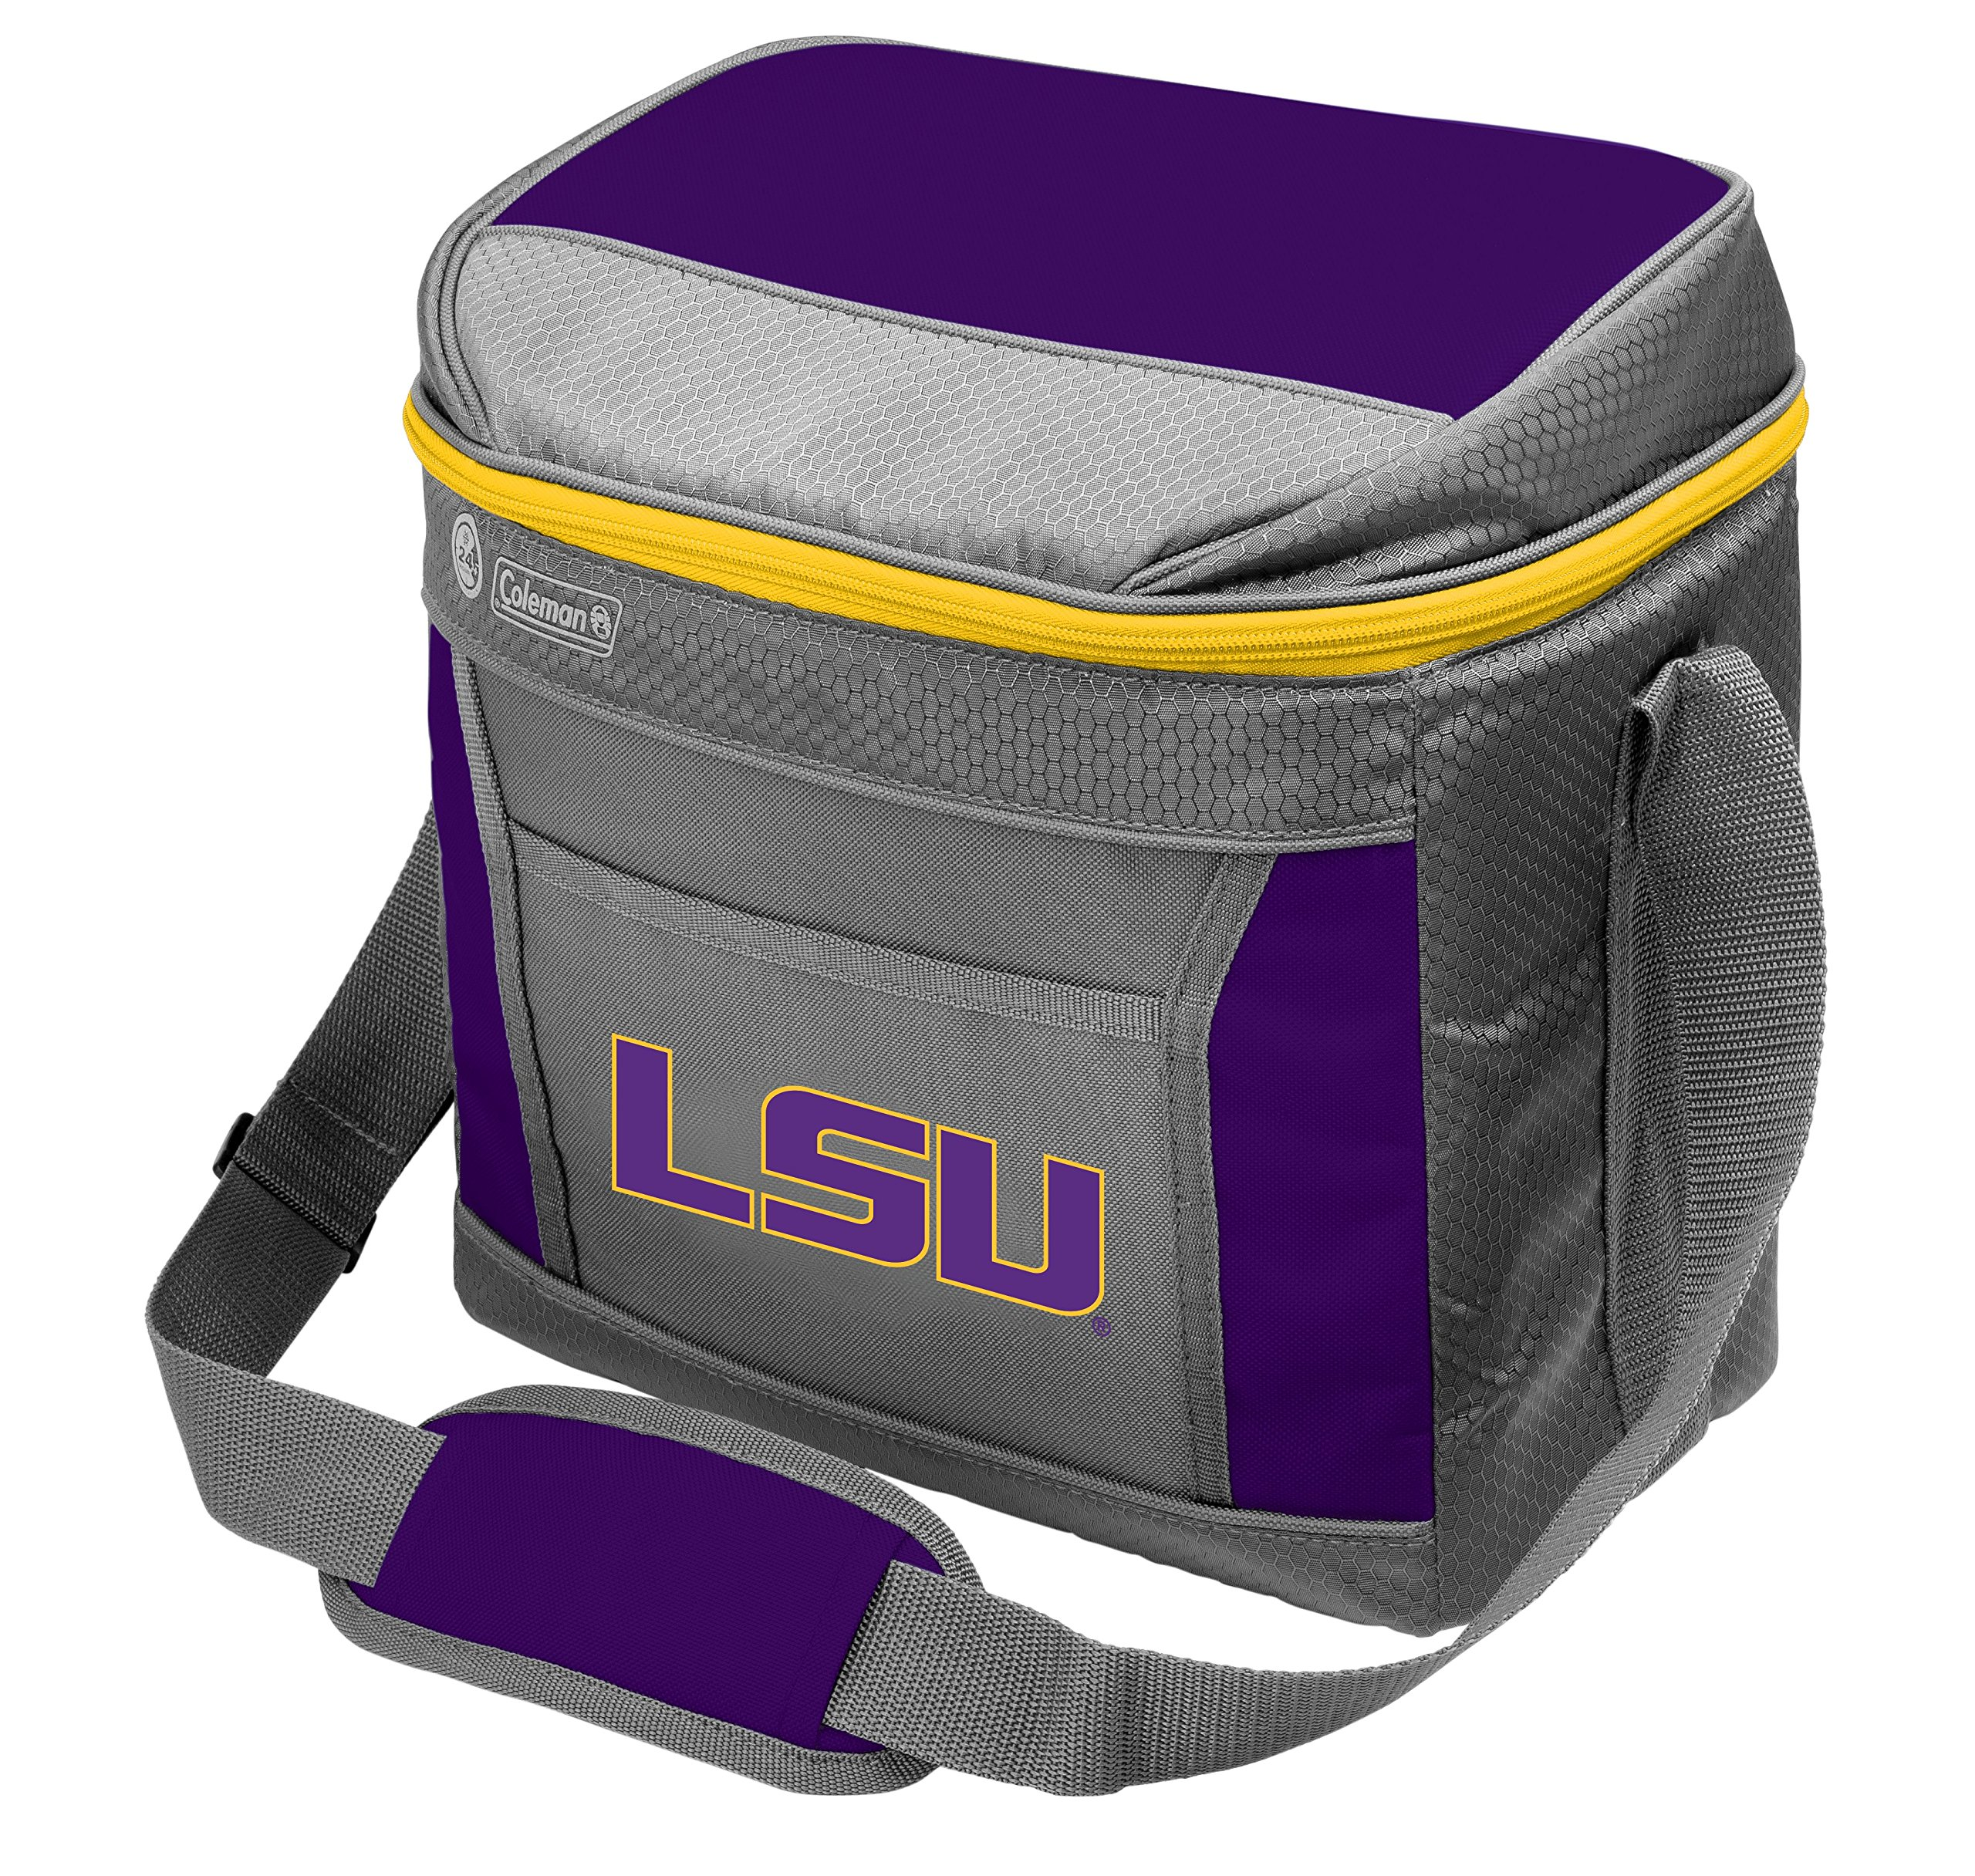 Coleman NCAA Soft-Sided Insulated Cooler Bag, 16-Can Capacity, Louisiana State Tigers